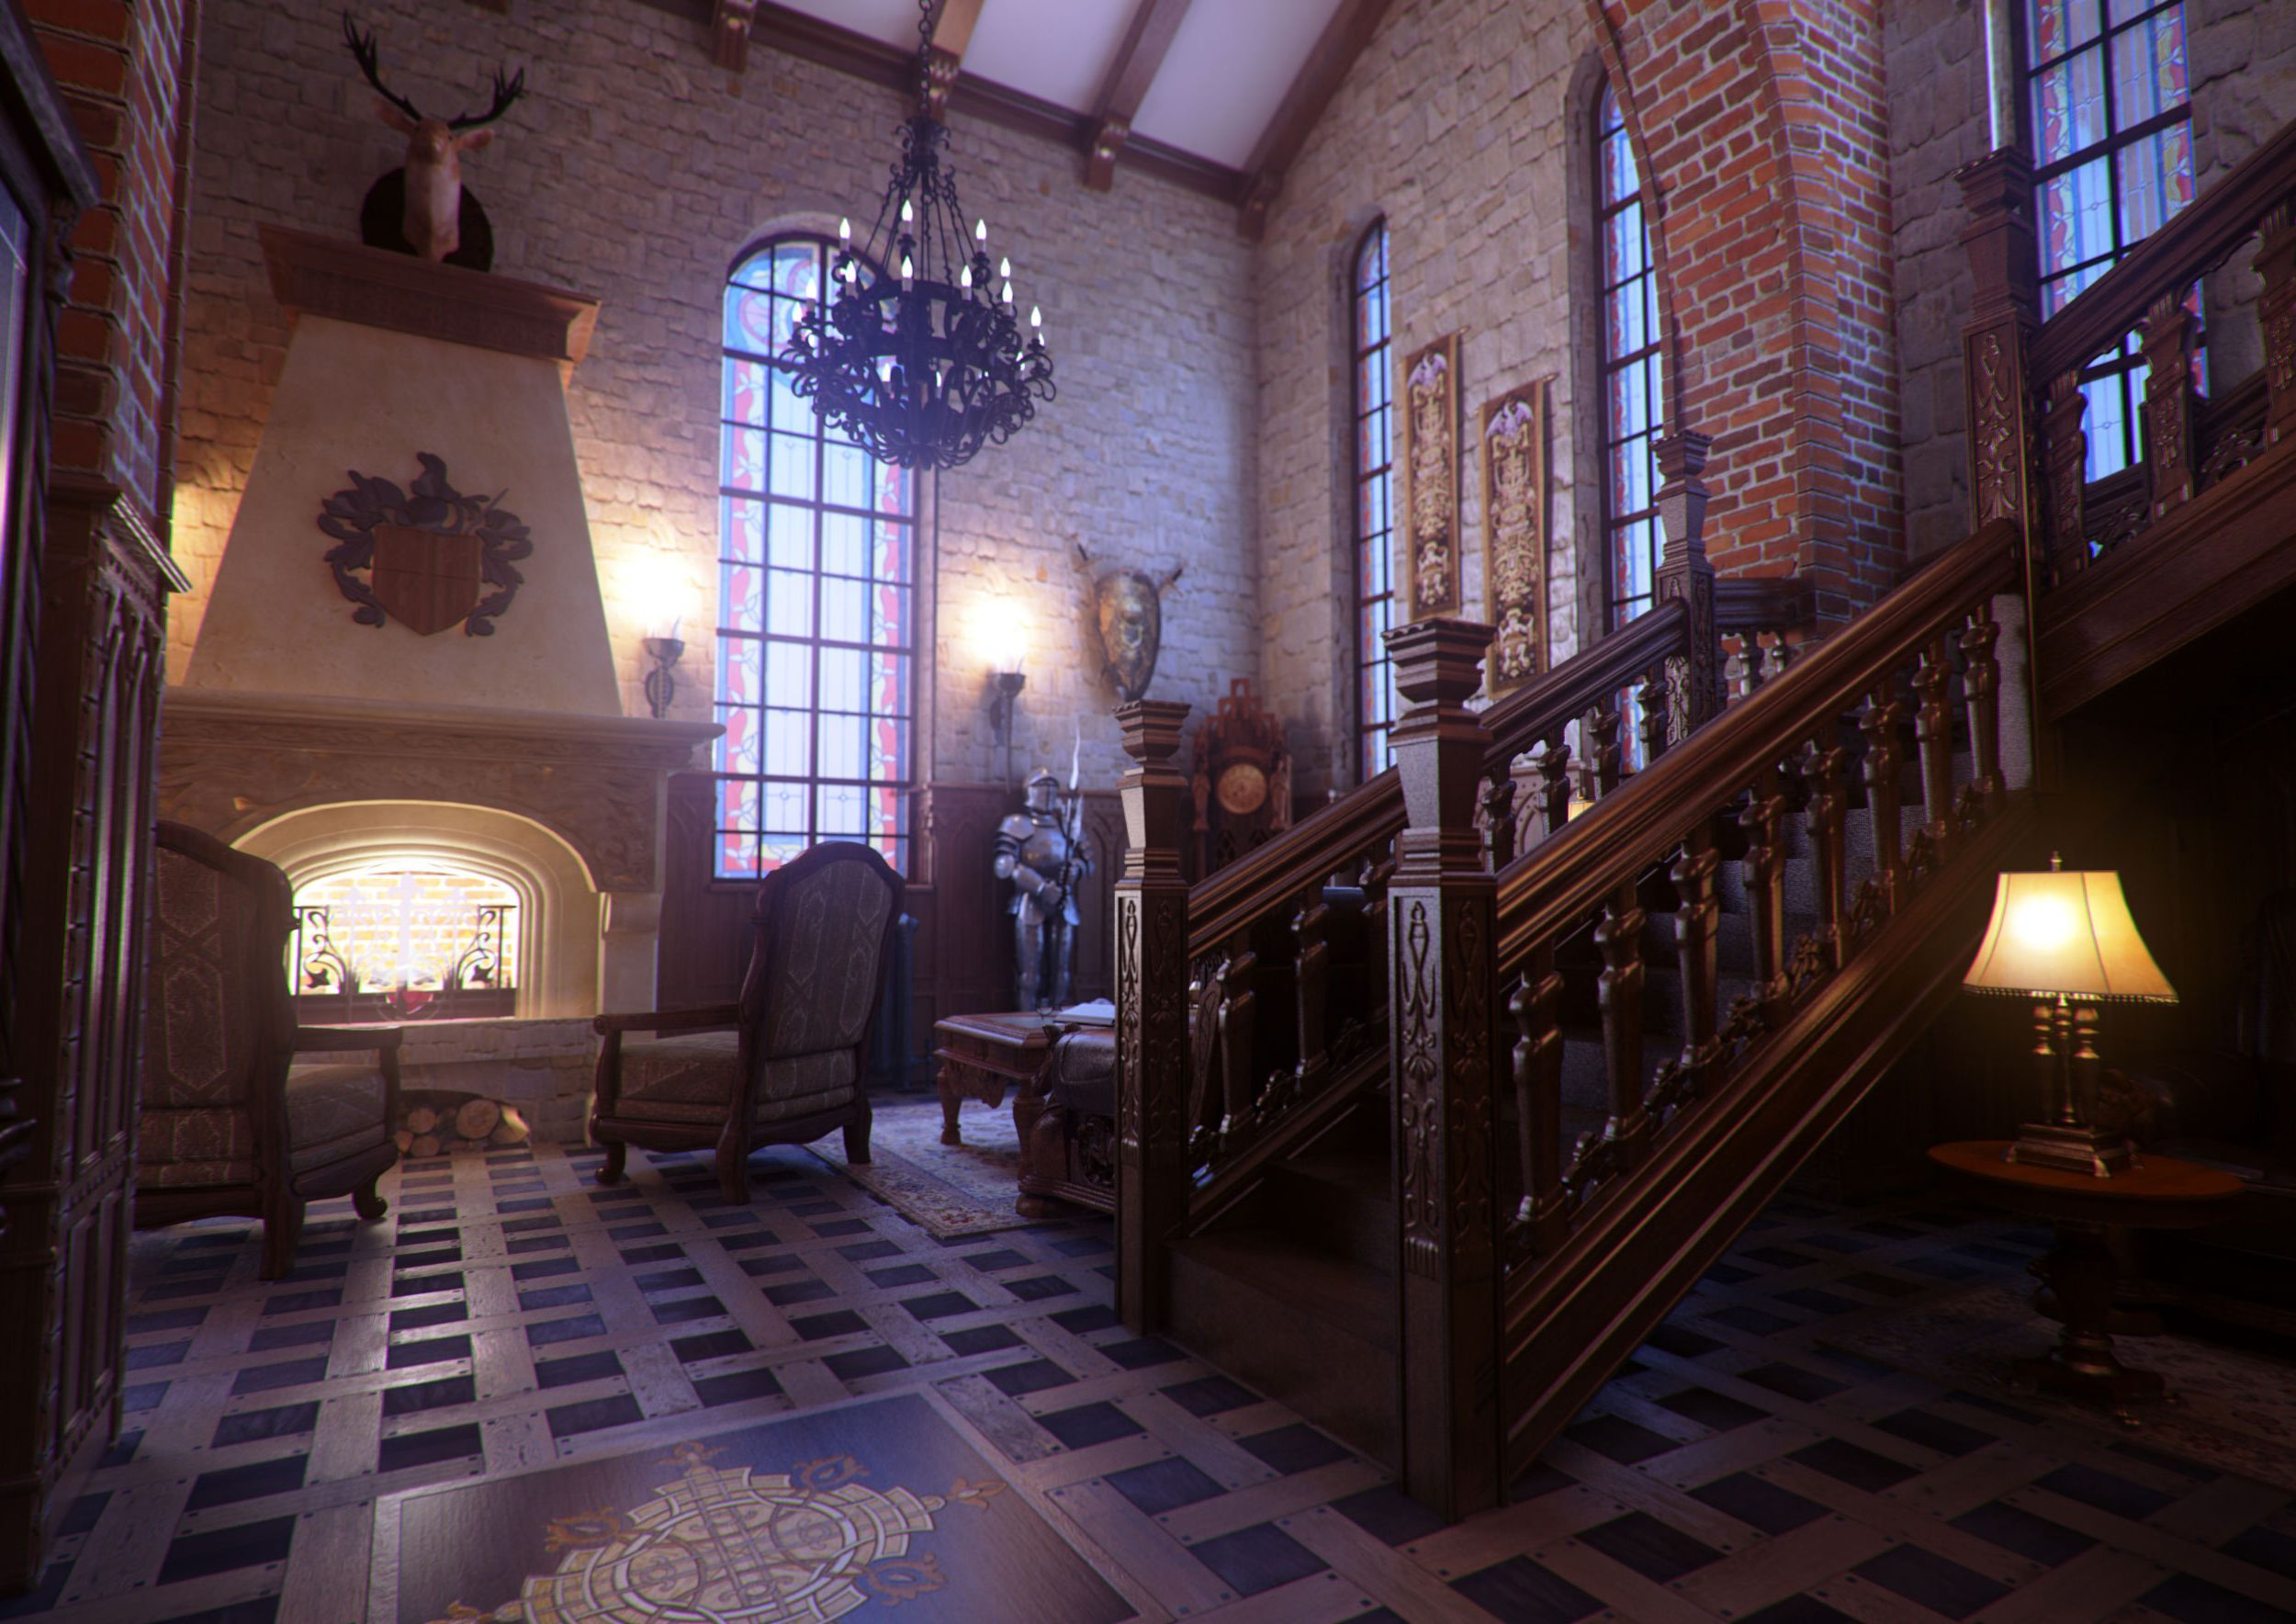 Interior , Gothic Interior Decorating For Classy And Catchy House Design :  Classical Home With High Ceiling And Gothic Design Idea